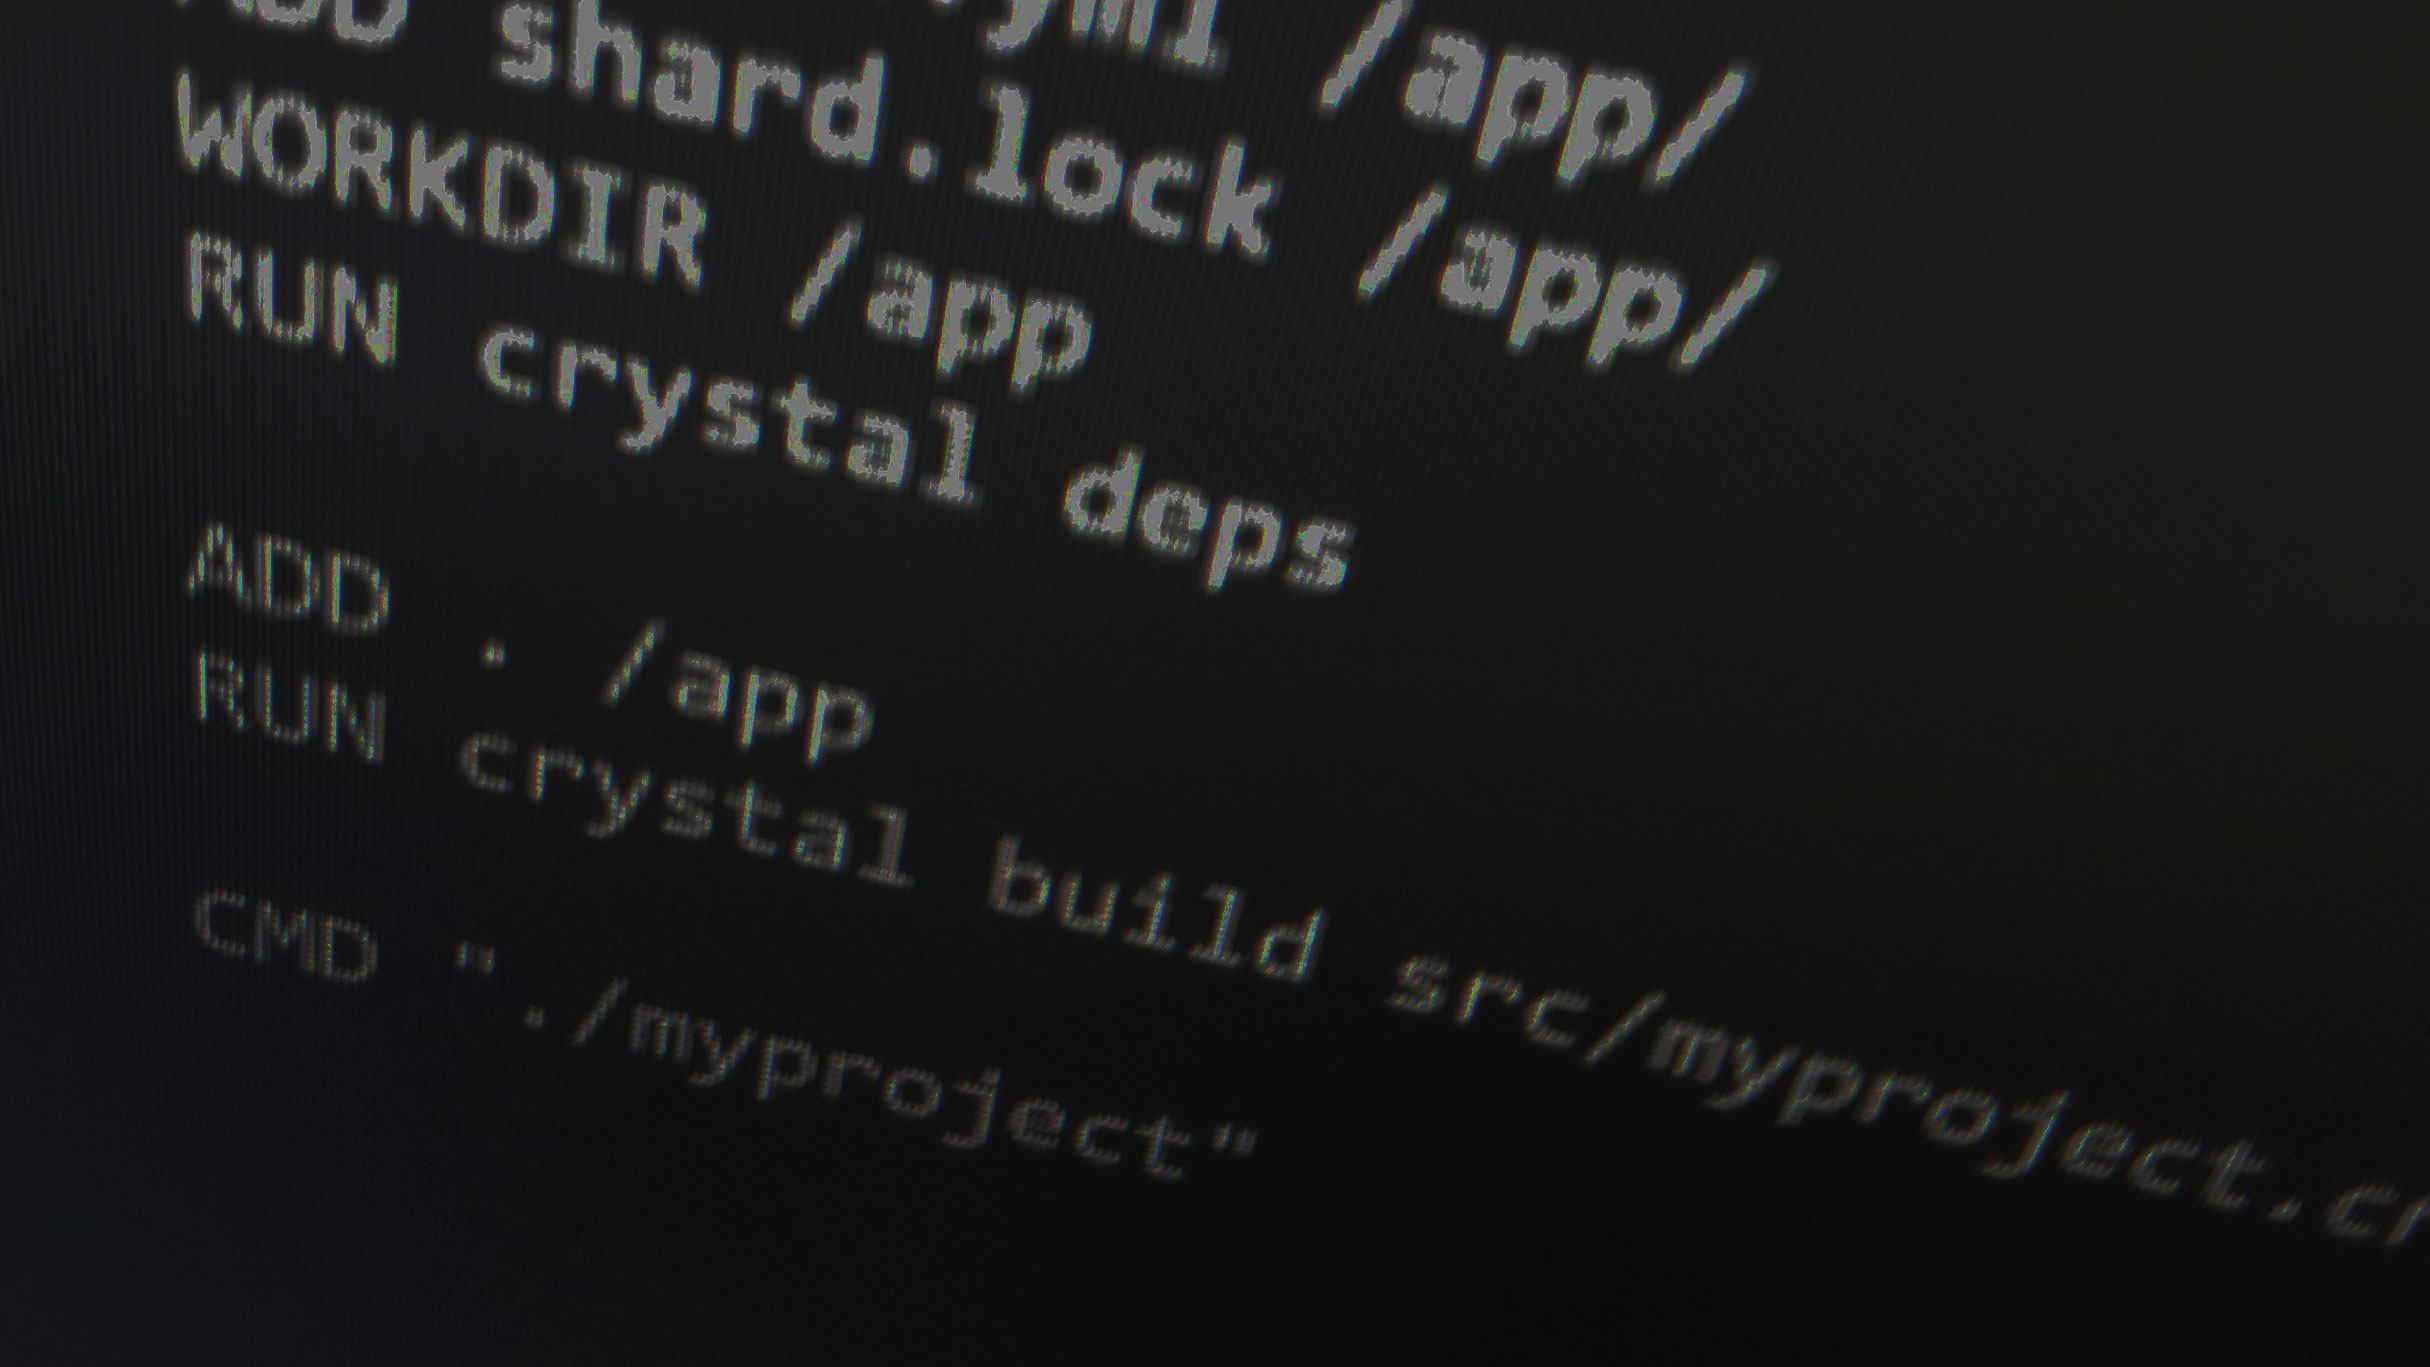 Crystal docker